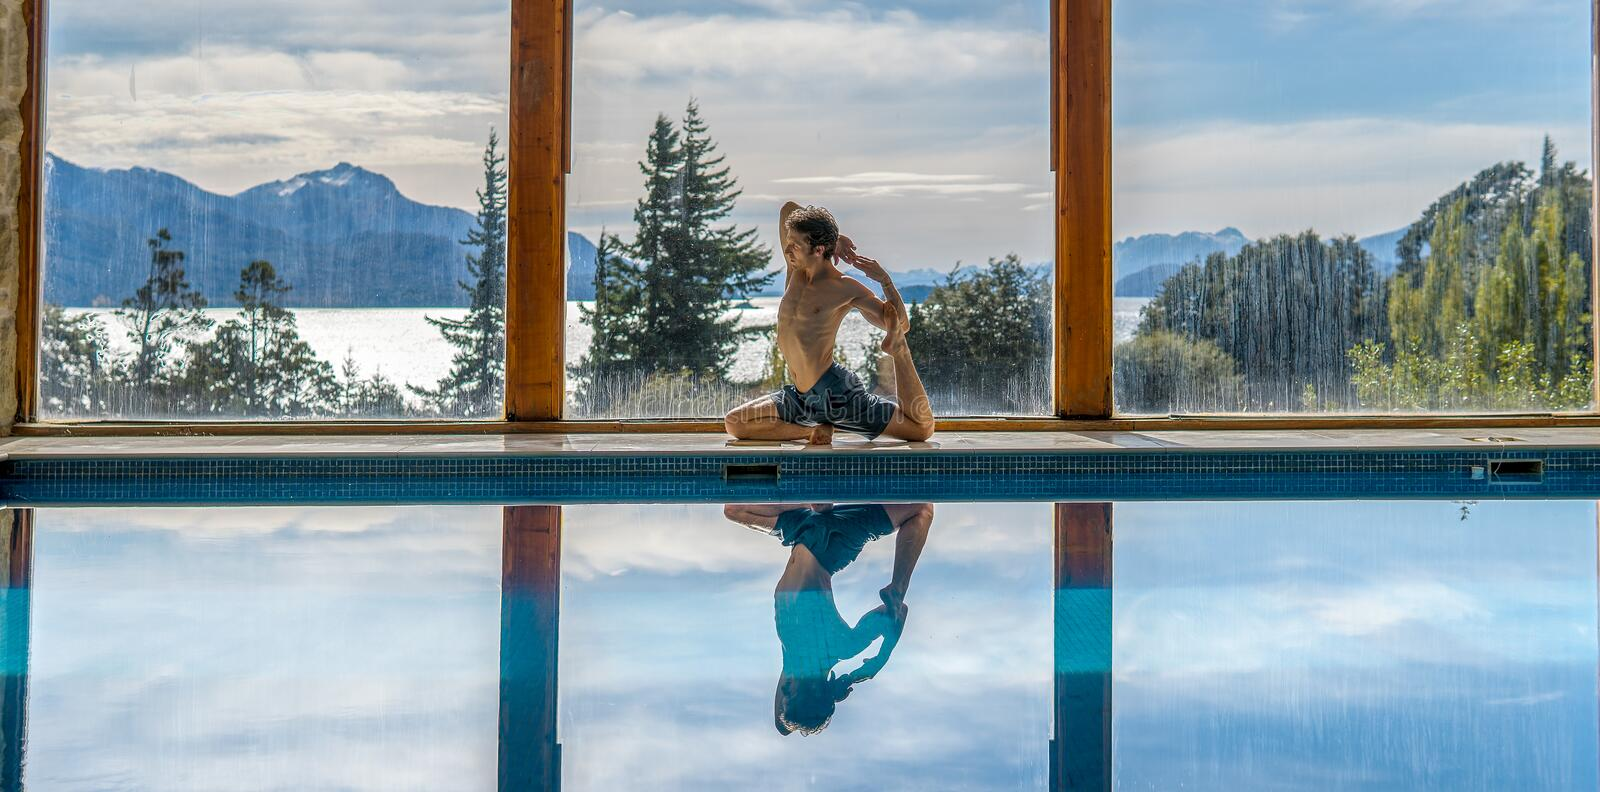 Yoga Poses by Pool. Infront of mountains and lake with reflection in pool, landscape, nature, active, adult, arm, asana, body, concentration, exercise, fit royalty free stock photo